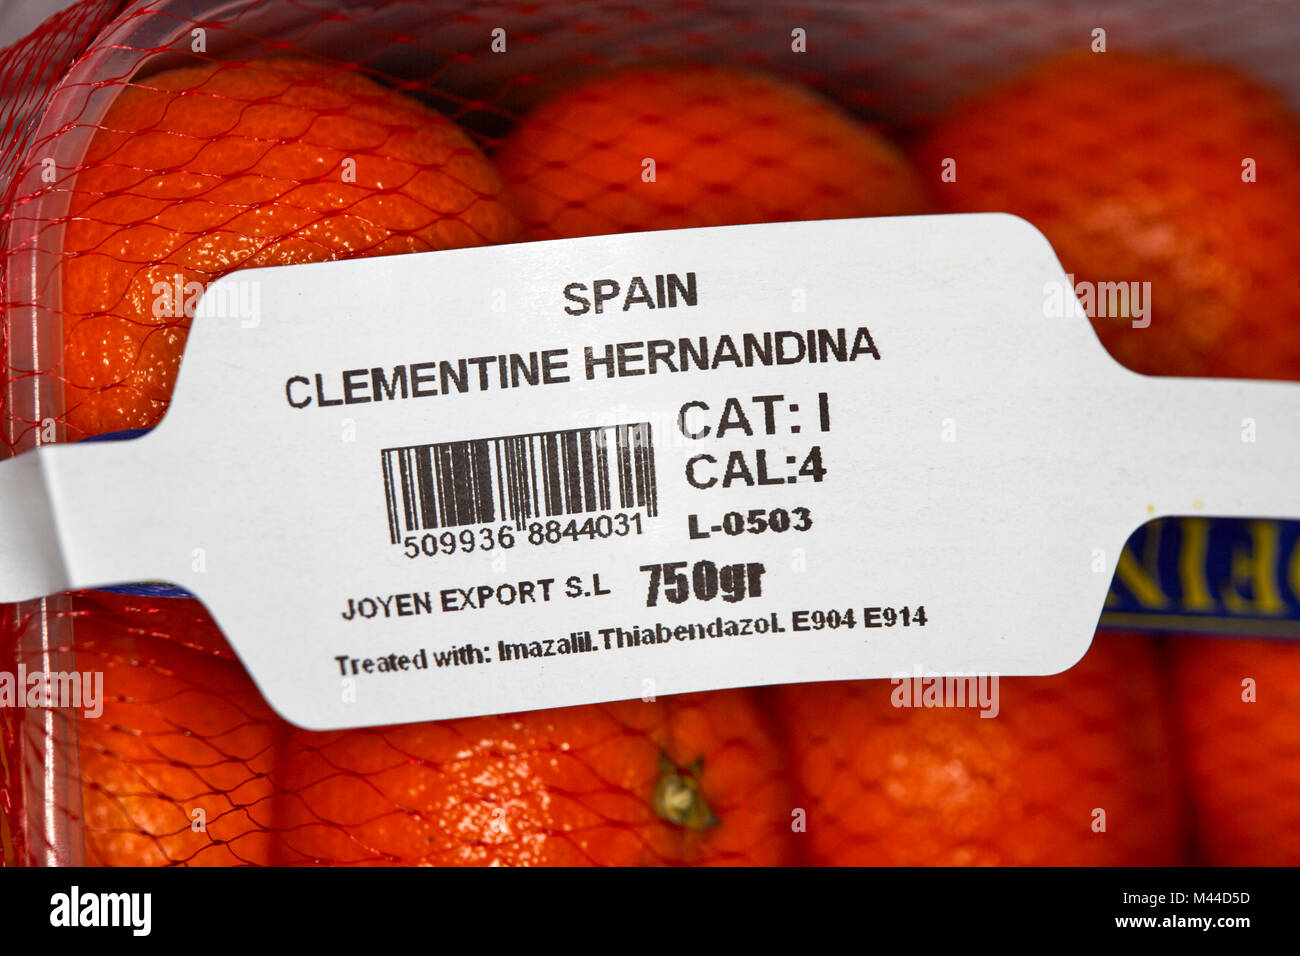 label on a box of spanish imported clementines in plastic packaging treated with pesticides - Stock Image